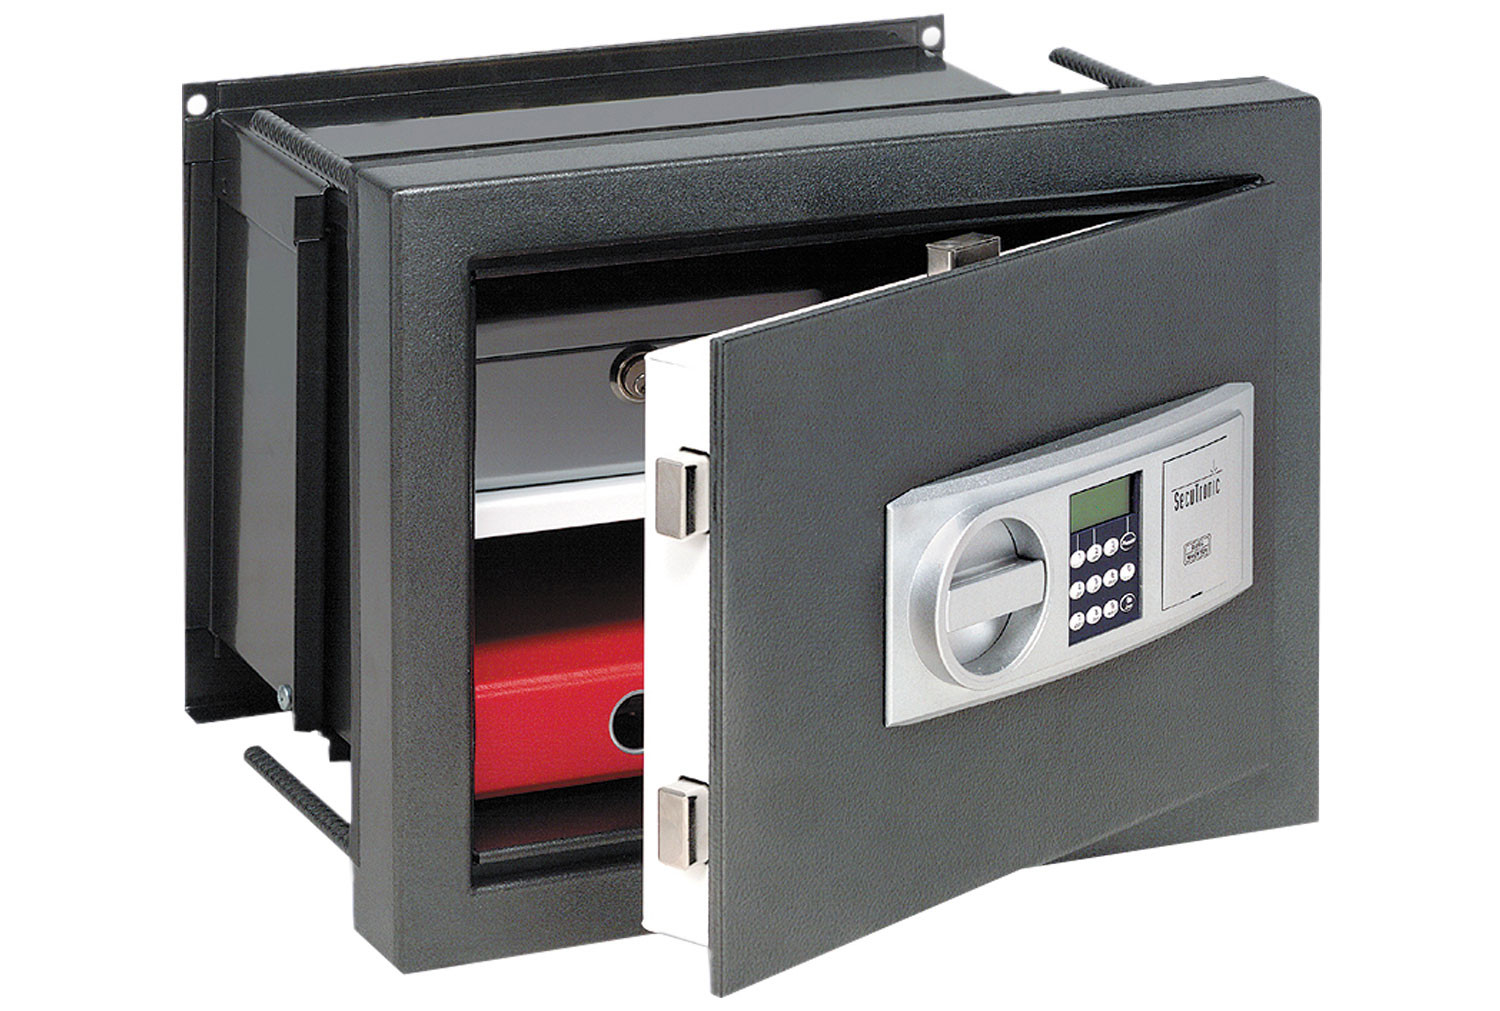 Burg Wachter Karat WT 14 N E Wall Safe With Electronic Lock (26ltrs)